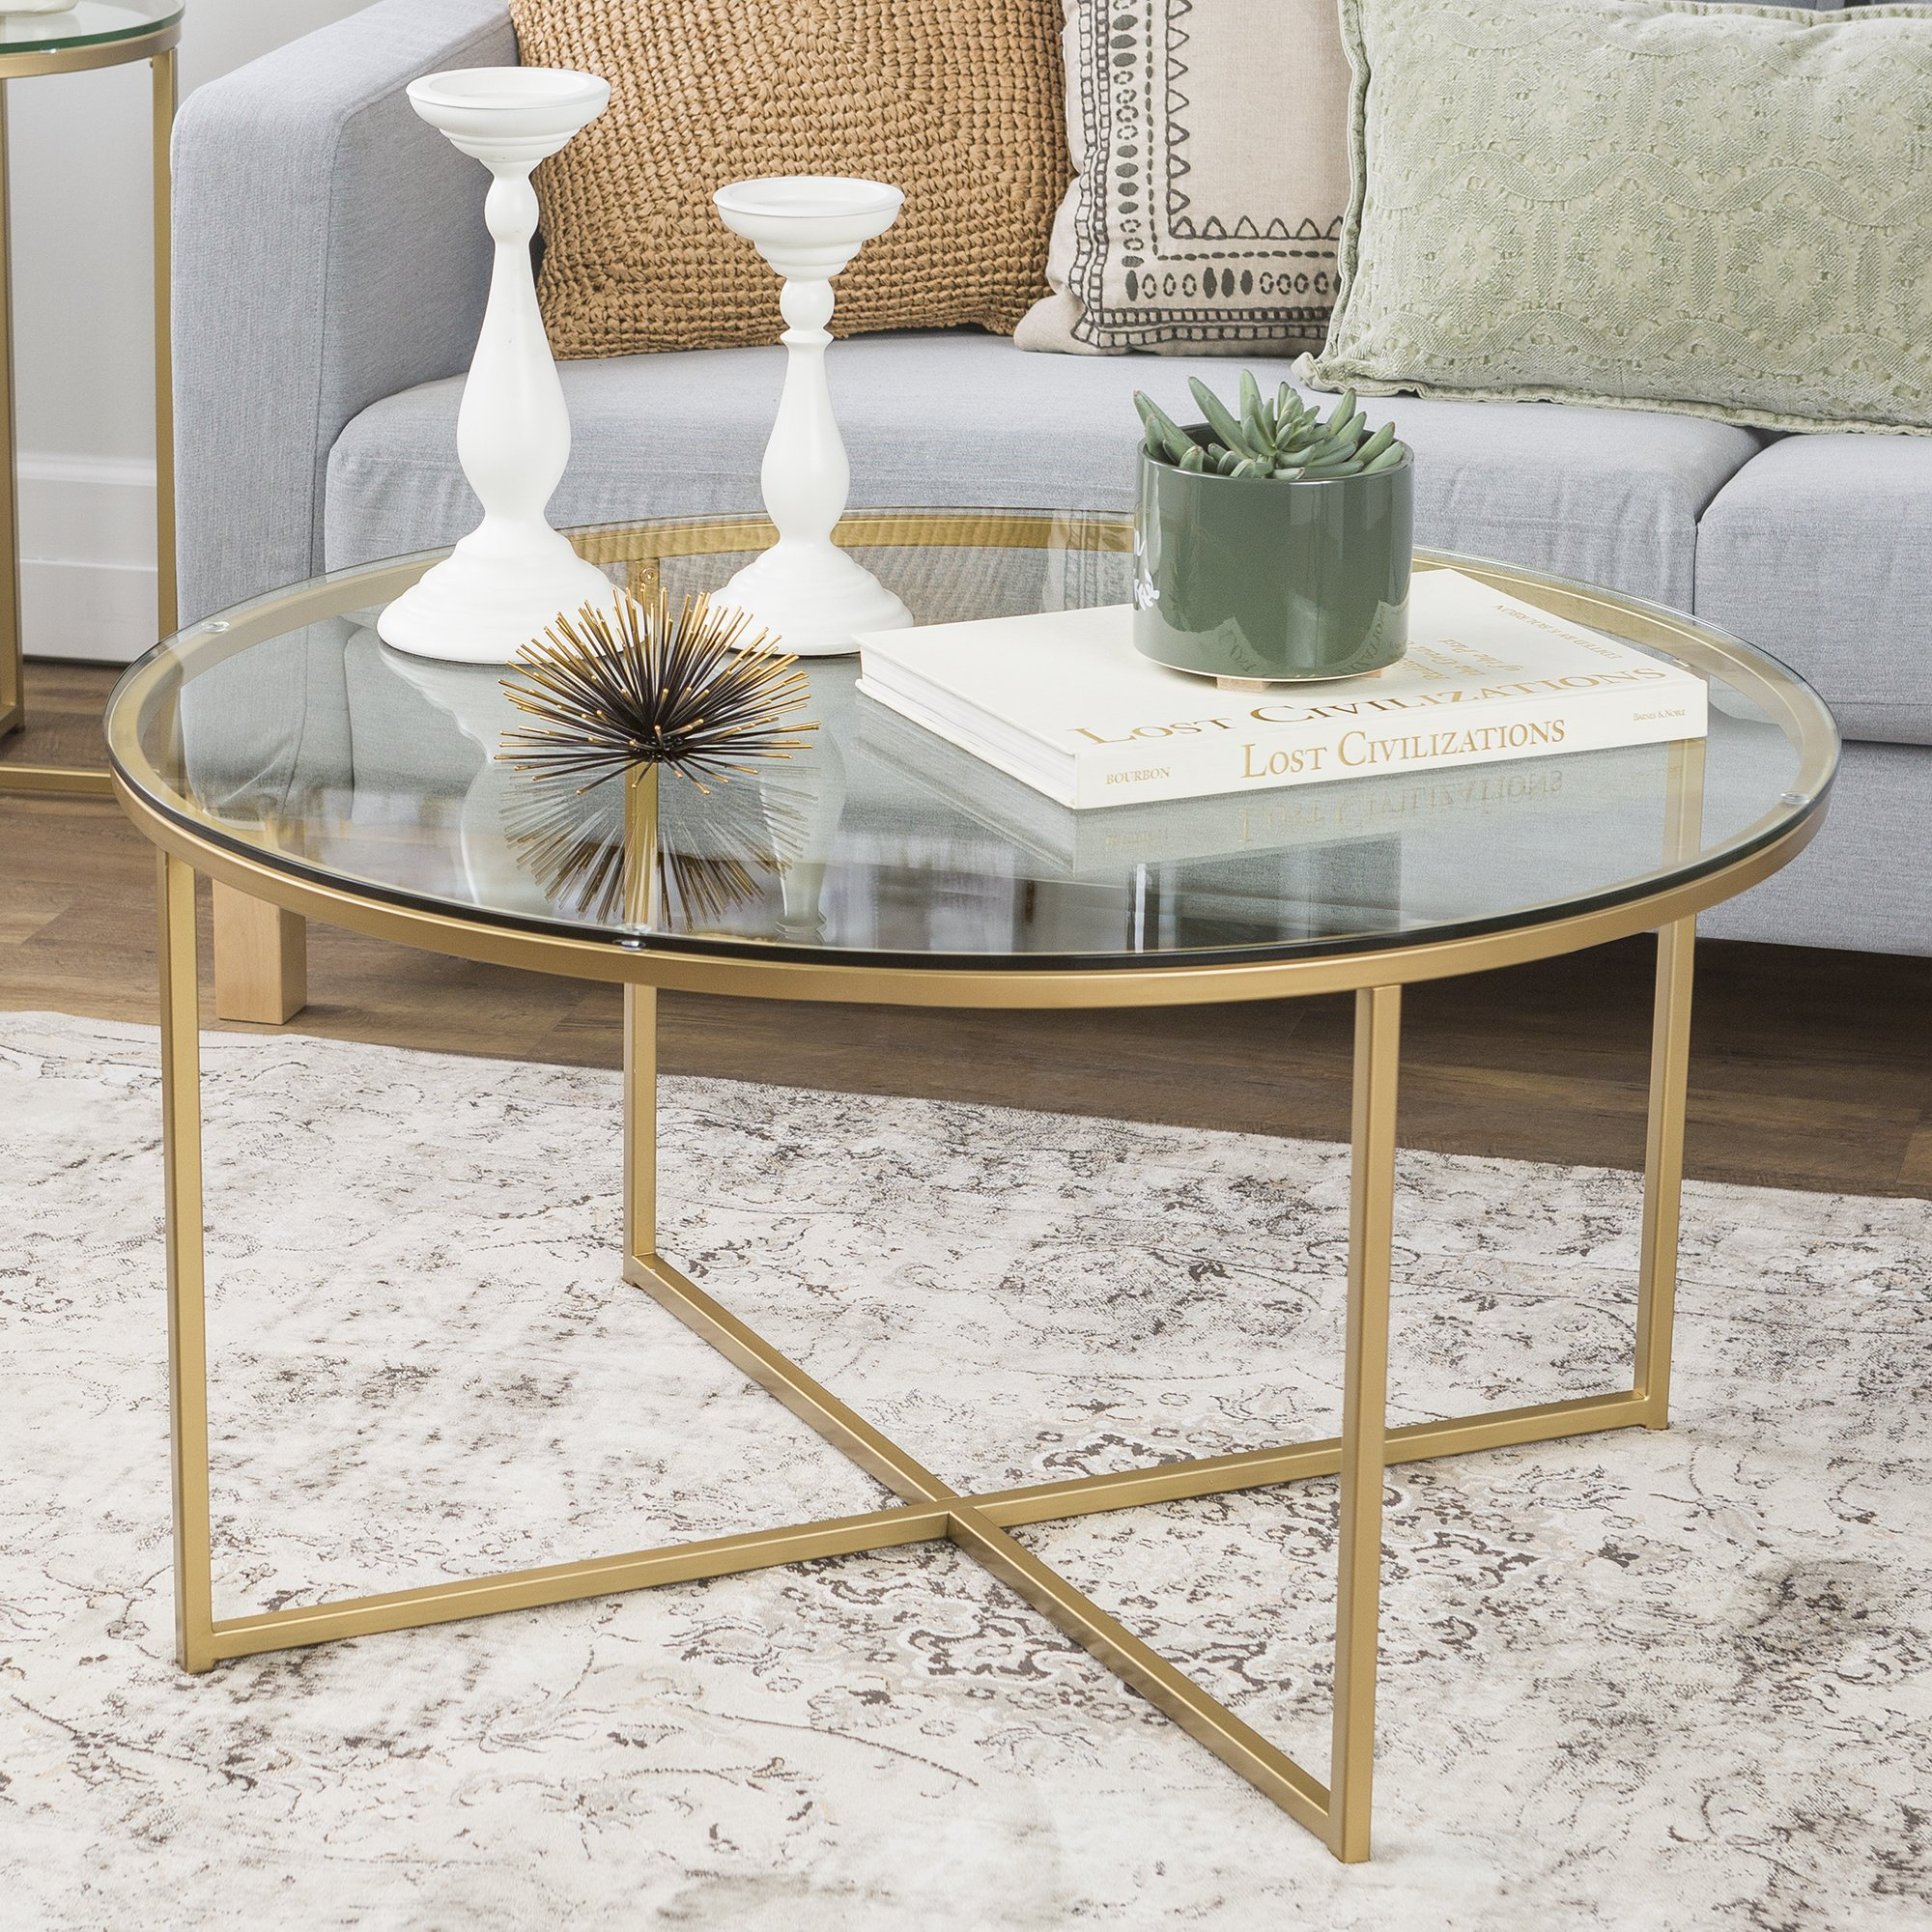 Style Meets Practical With Our 36u201d Round Coffee Table. Made Of High Grade  MDF, This Table Is Sure To Please On Its Own, Or Styled With Our Matching  Side ...